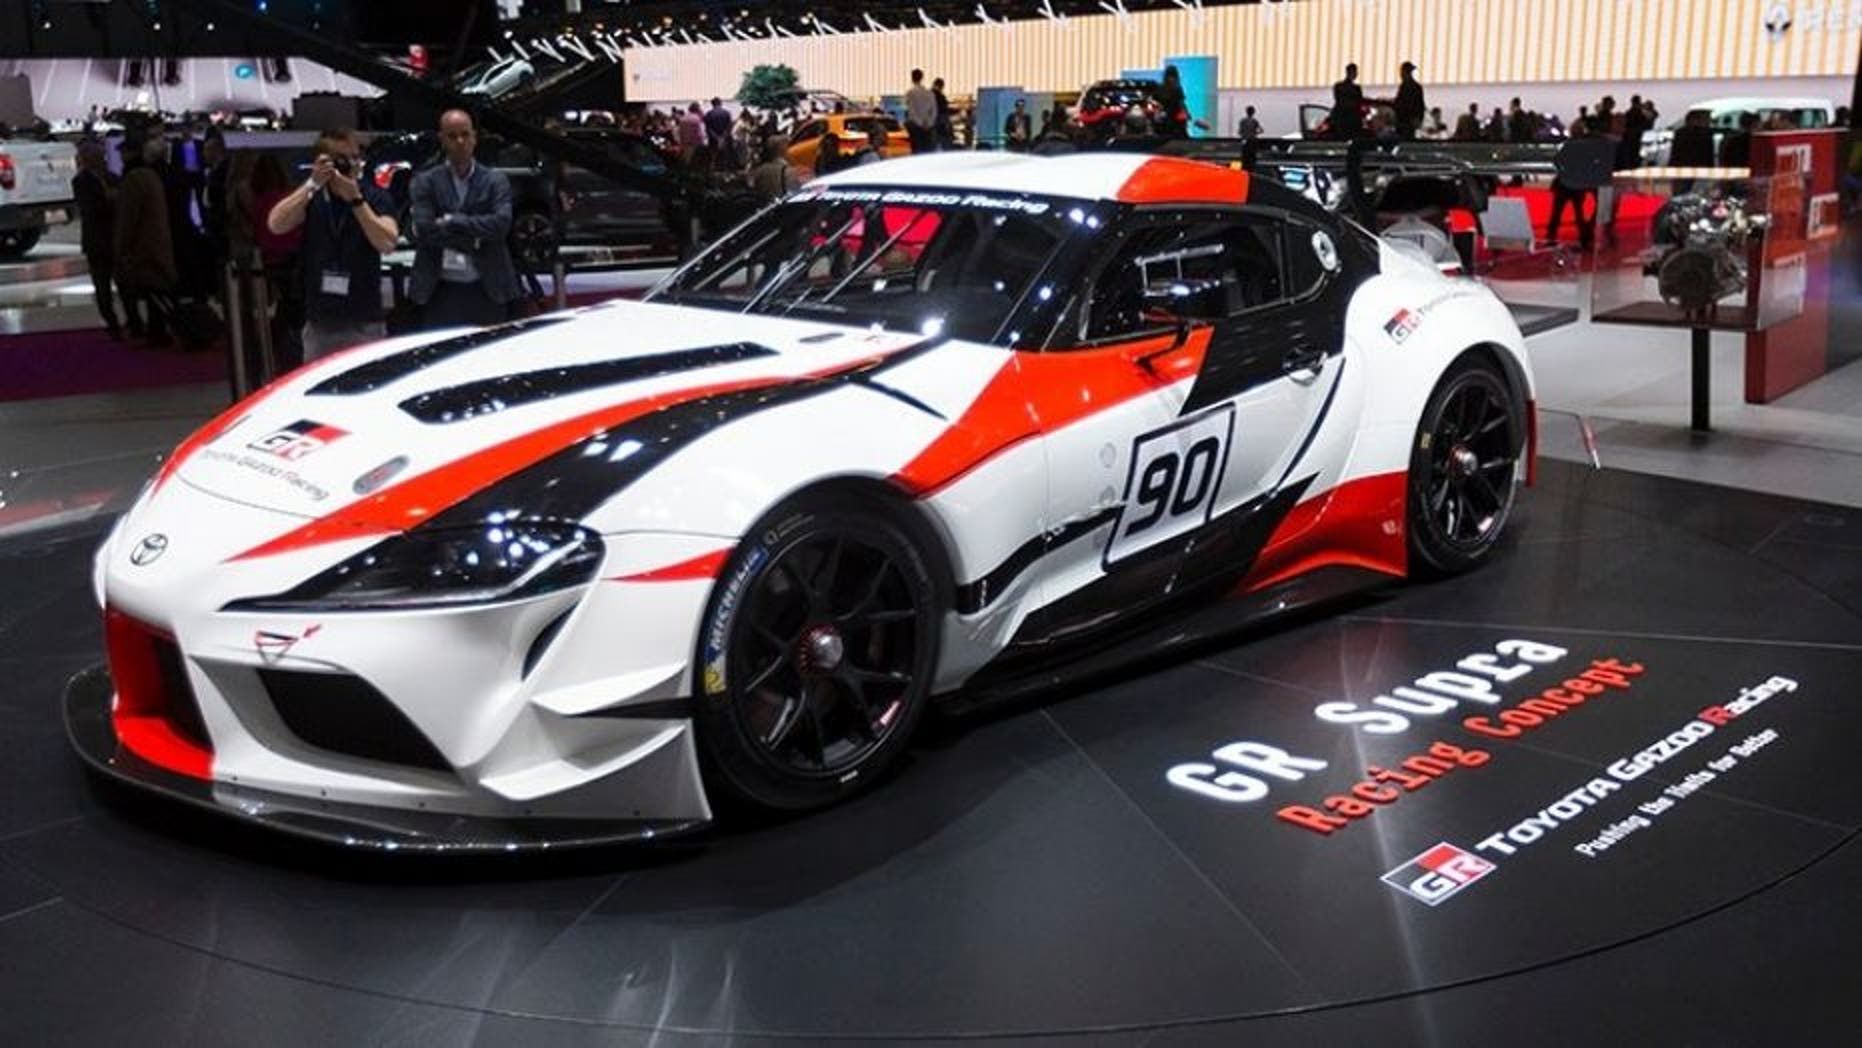 The GR Supra Is A Concept For A Road Racing Version Of The Upcoming Sports  Car